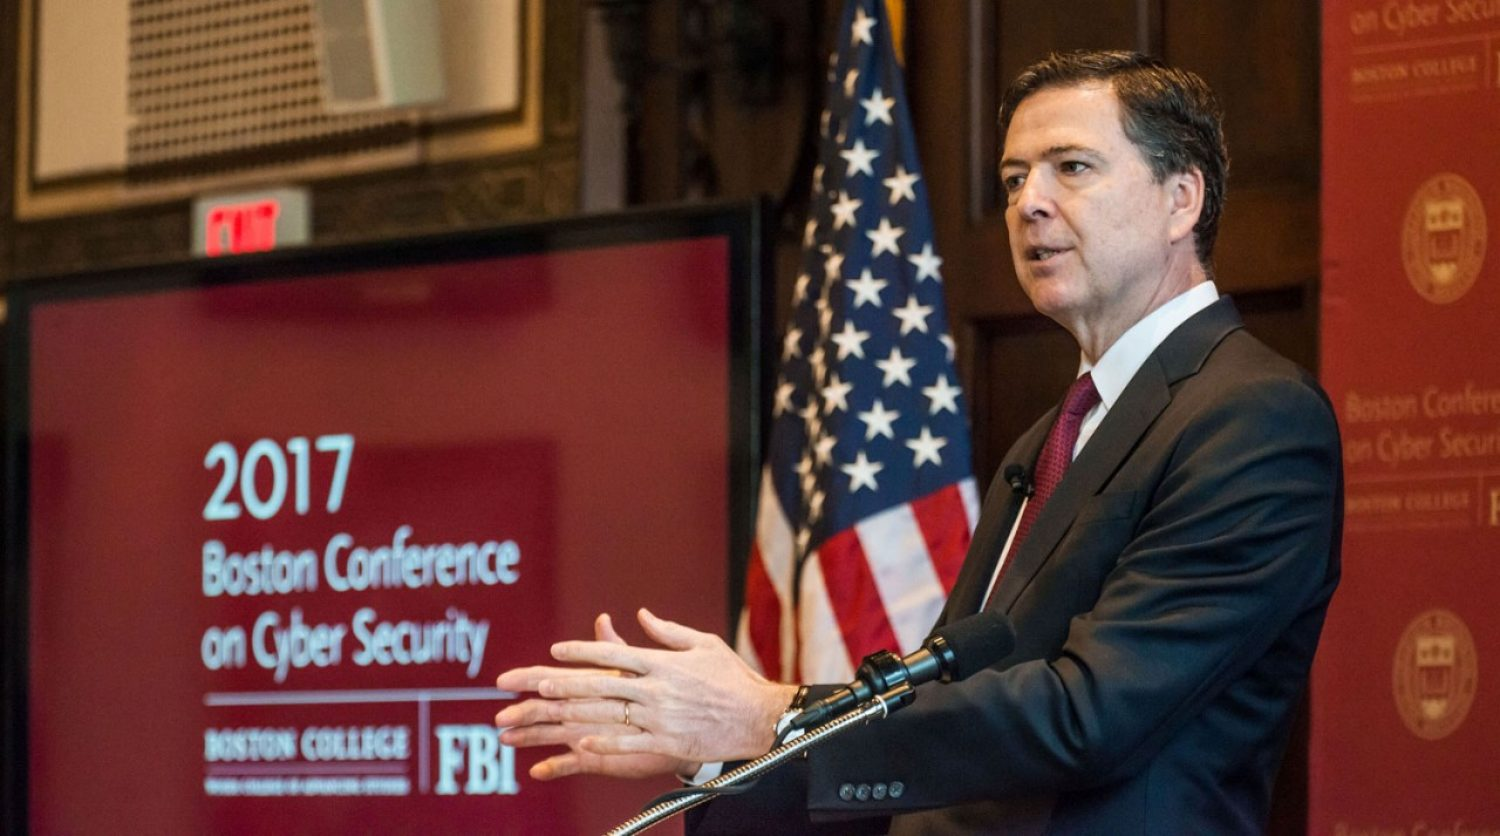 FBI Director James B. Comey at BC conference on cyber security